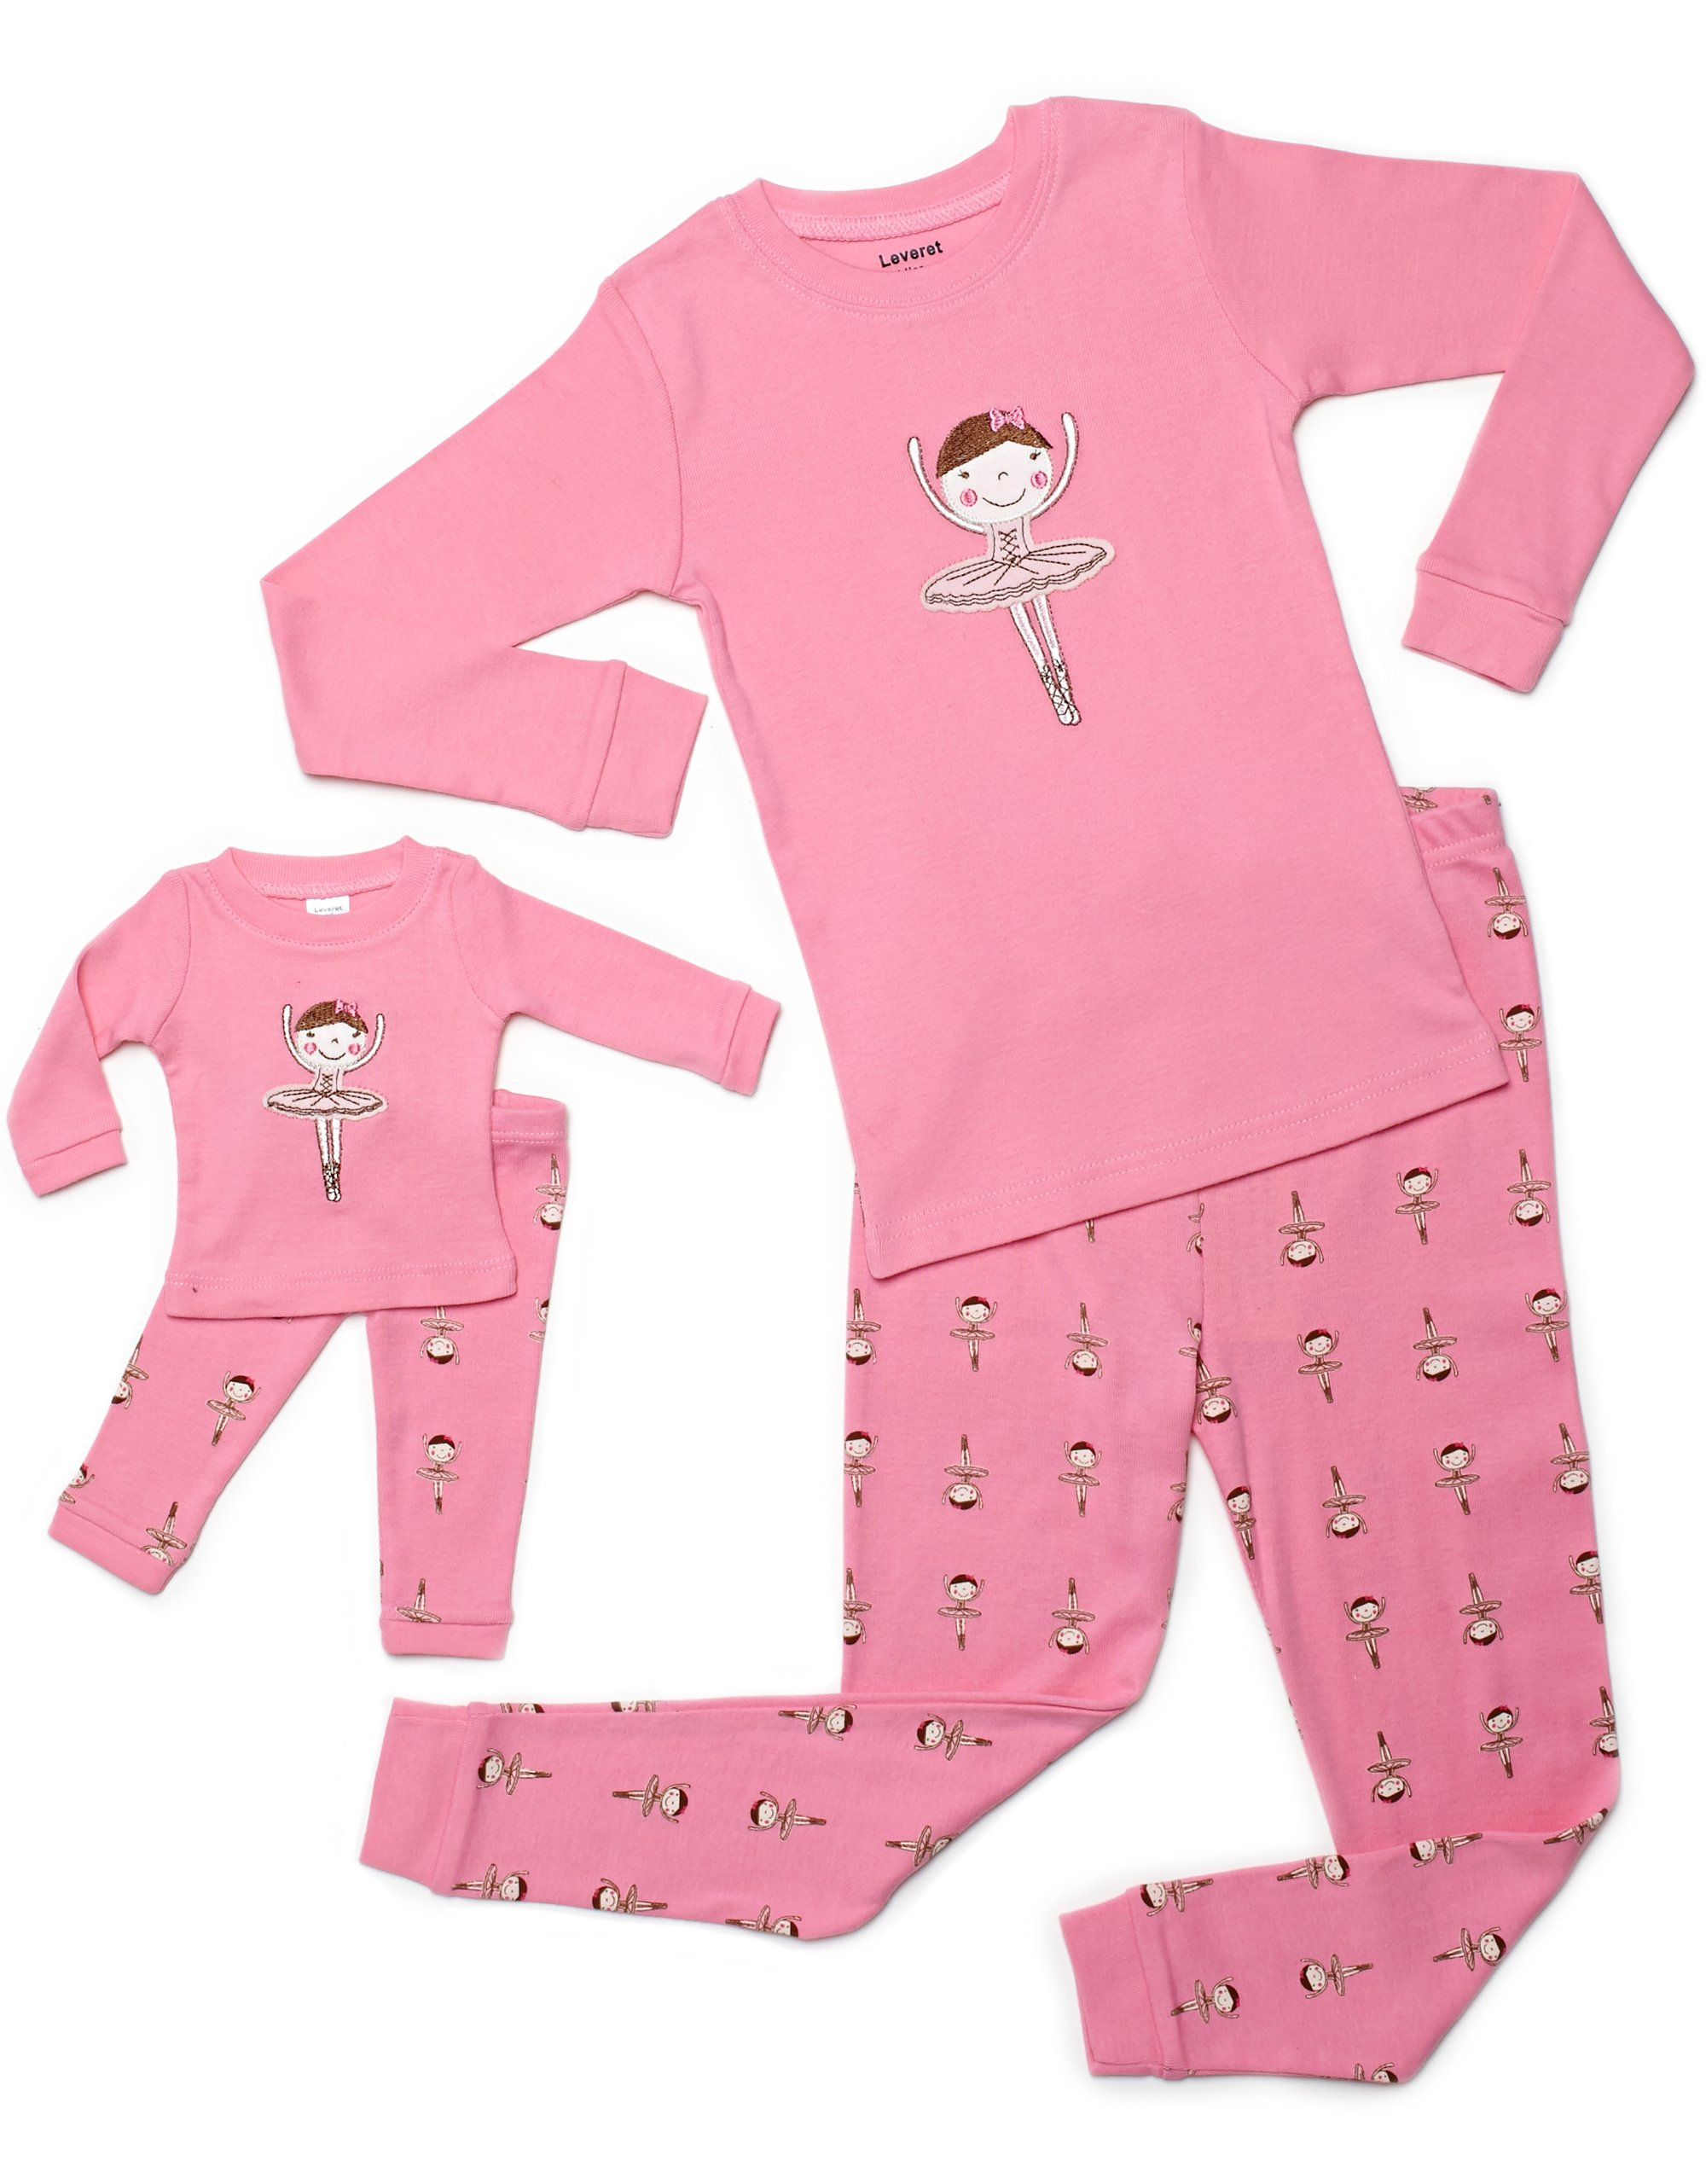 Leveret Ballerina Matching Doll & Girl 2 Piece Pajama Set 100% Cotton (14 Years)